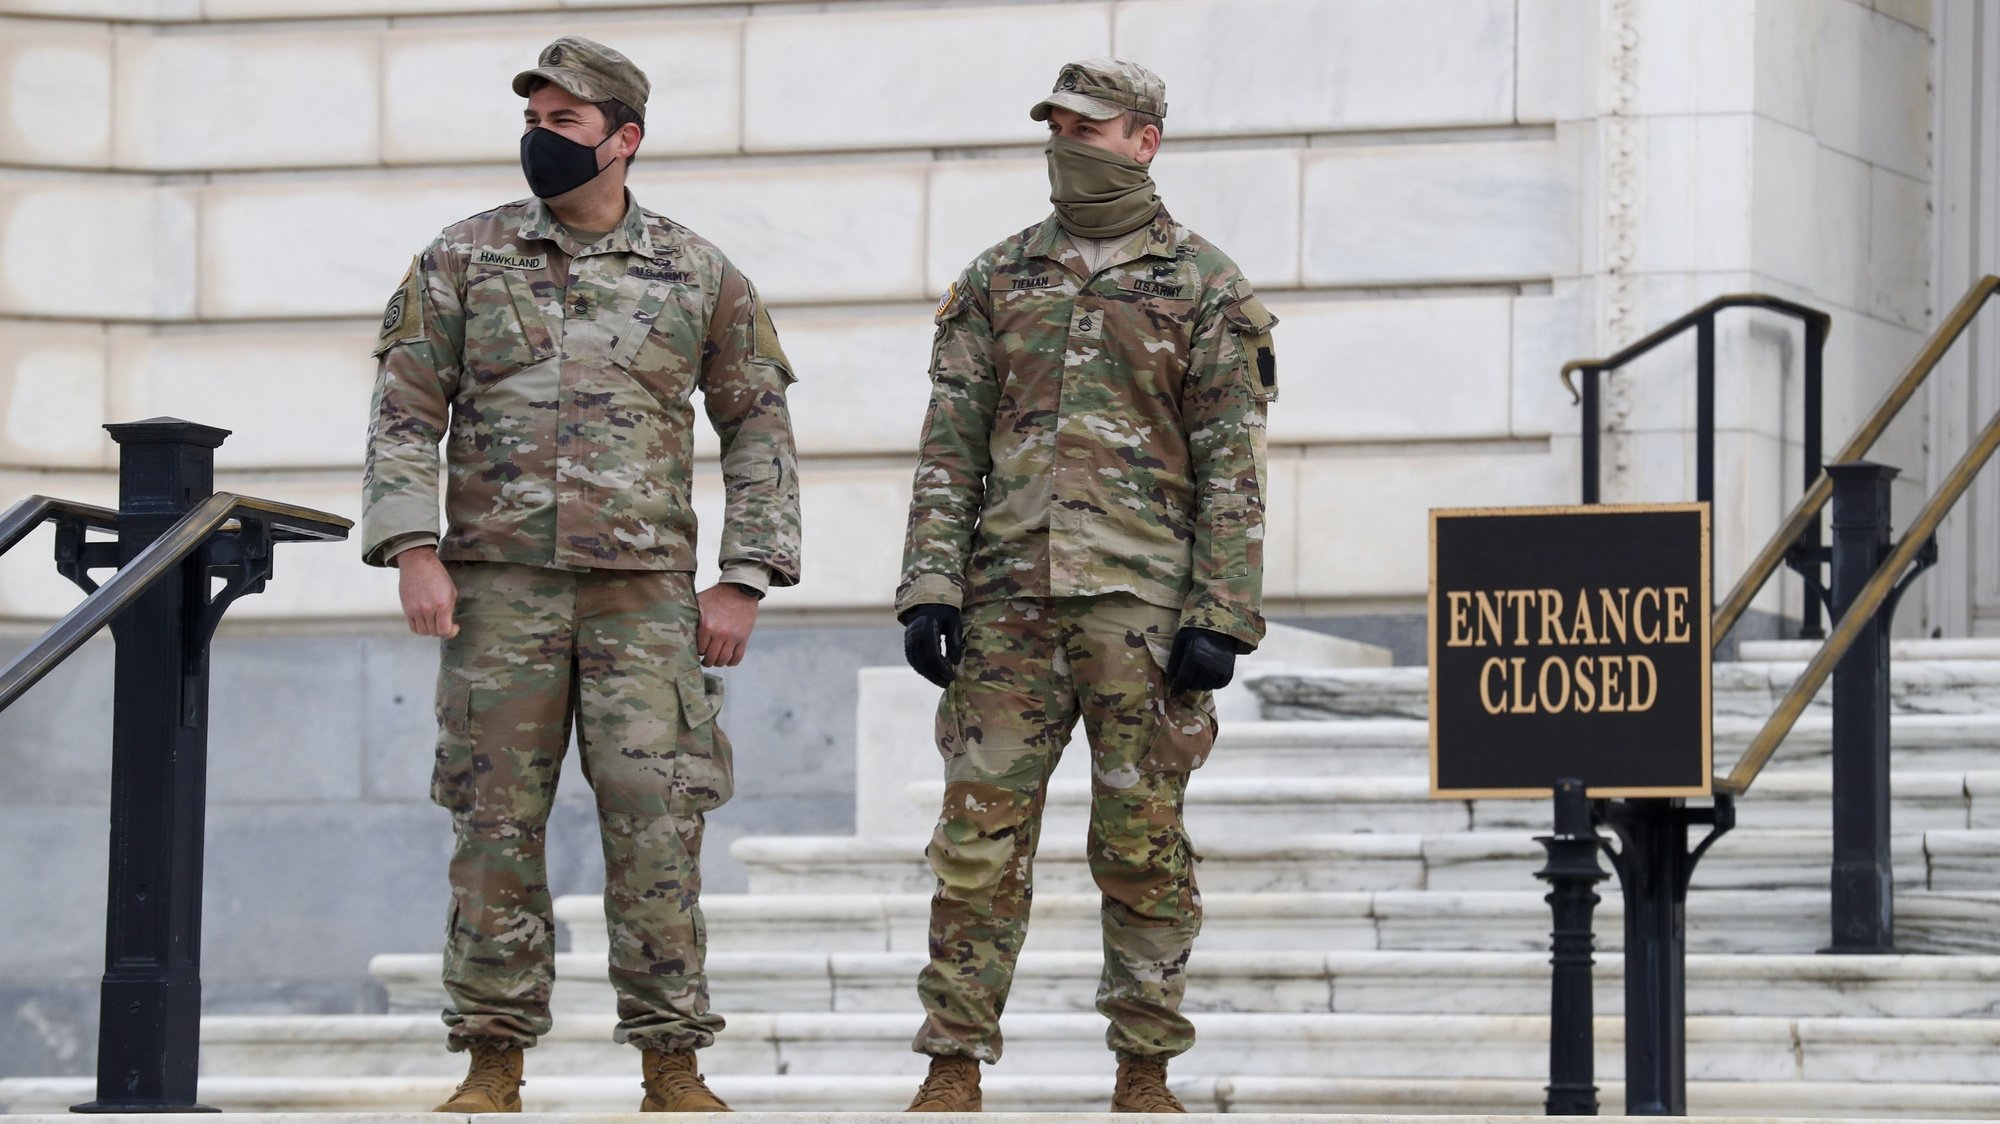 epa08931876 National Guard soldiers stand guard at the US Capitol in Washington, DC, USA, 11 January 2021. Speaker of the House Nancy Pelosi plans to introduce articles of impeachment against US President Donald J. Trump for incitement of insurrection following the attack on the US Capitol on 06 January as lawmakers worked to certify Joe Biden as the next President of the United States.  EPA/SHAWN THEW